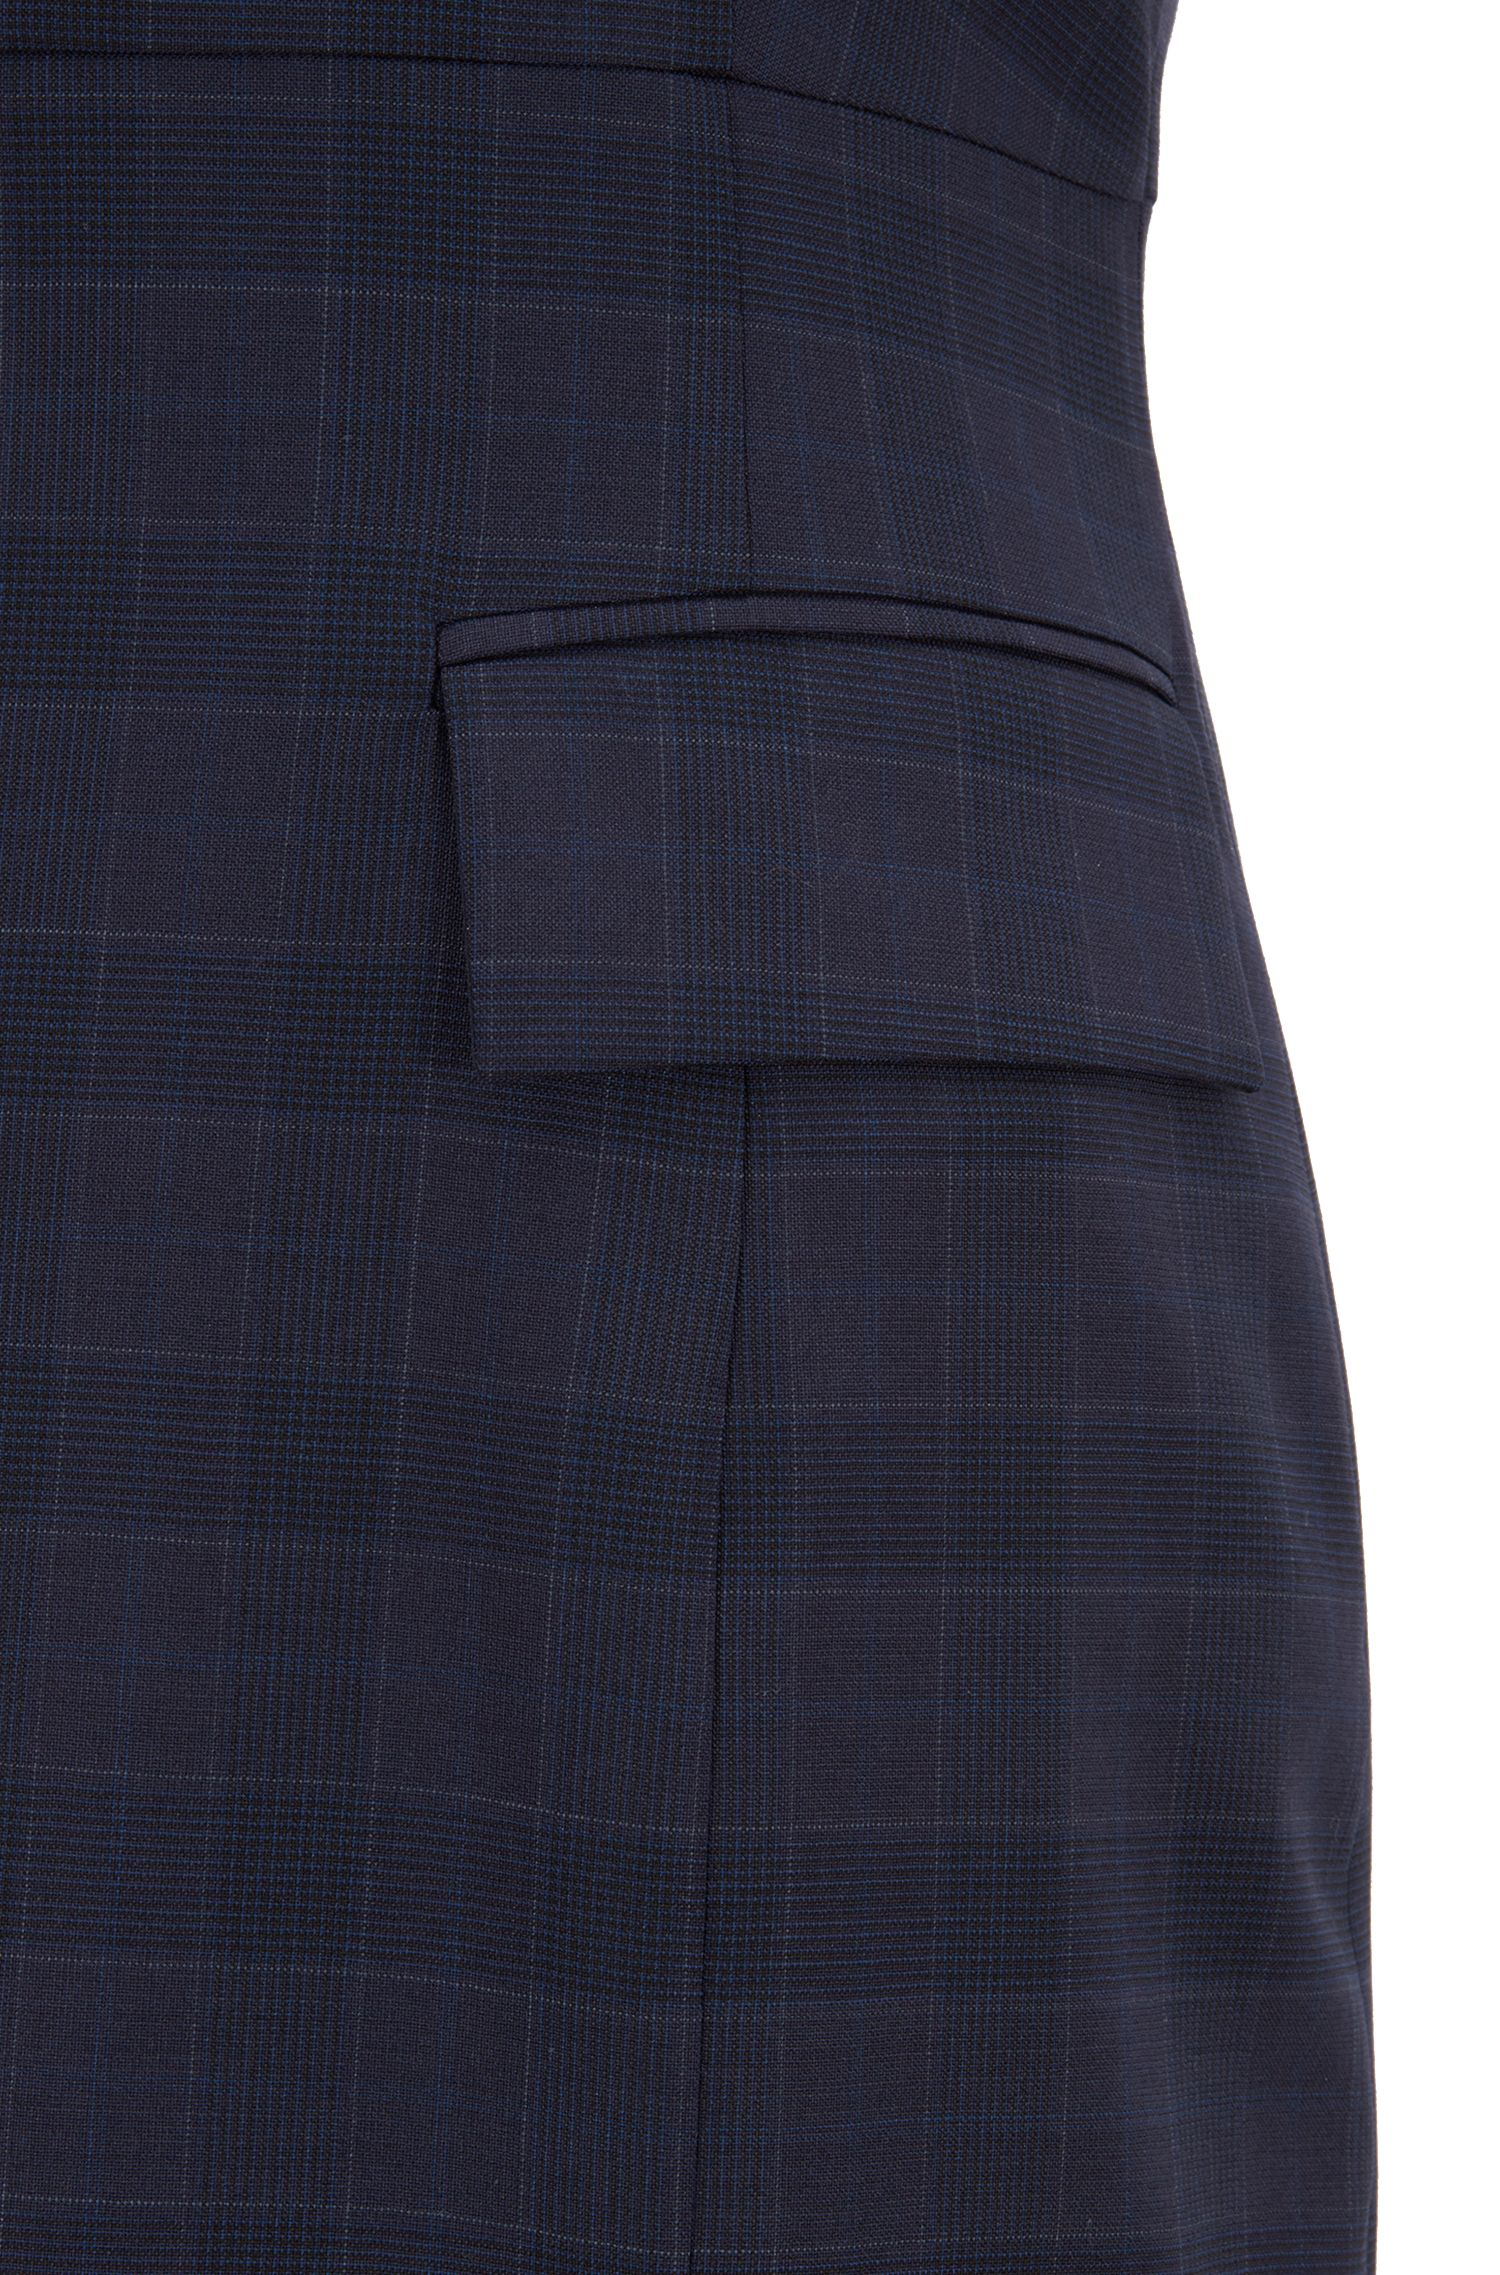 Sleeveless business dress in checkered virgin wool, Patterned